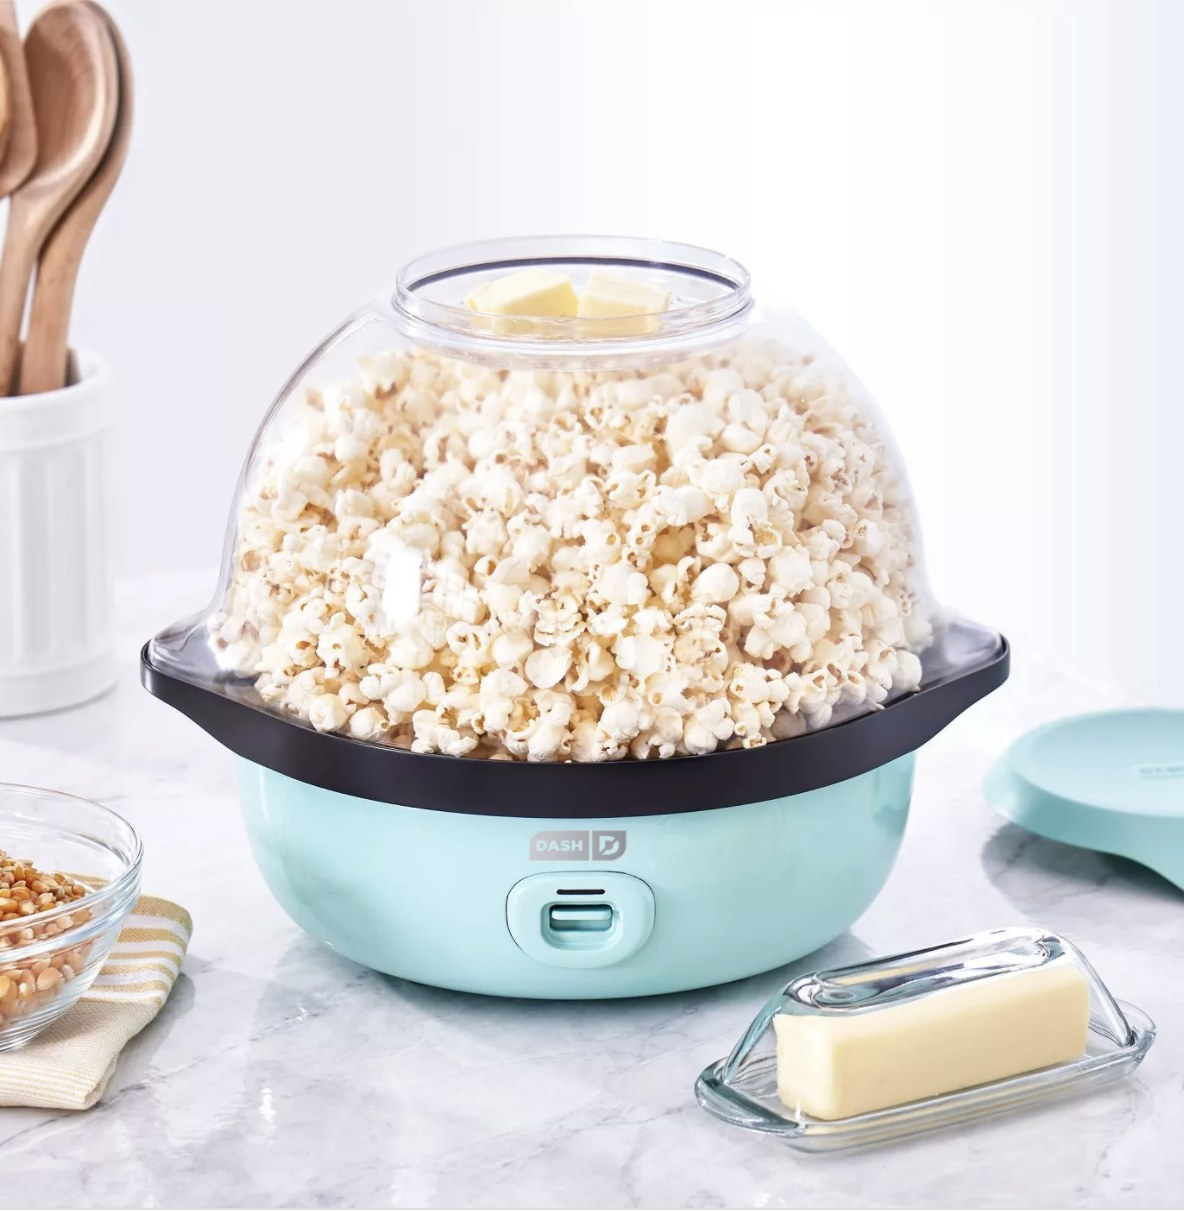 a popcorn maker in blue with popcorn inside of it and a stick of butter and kernels next to it